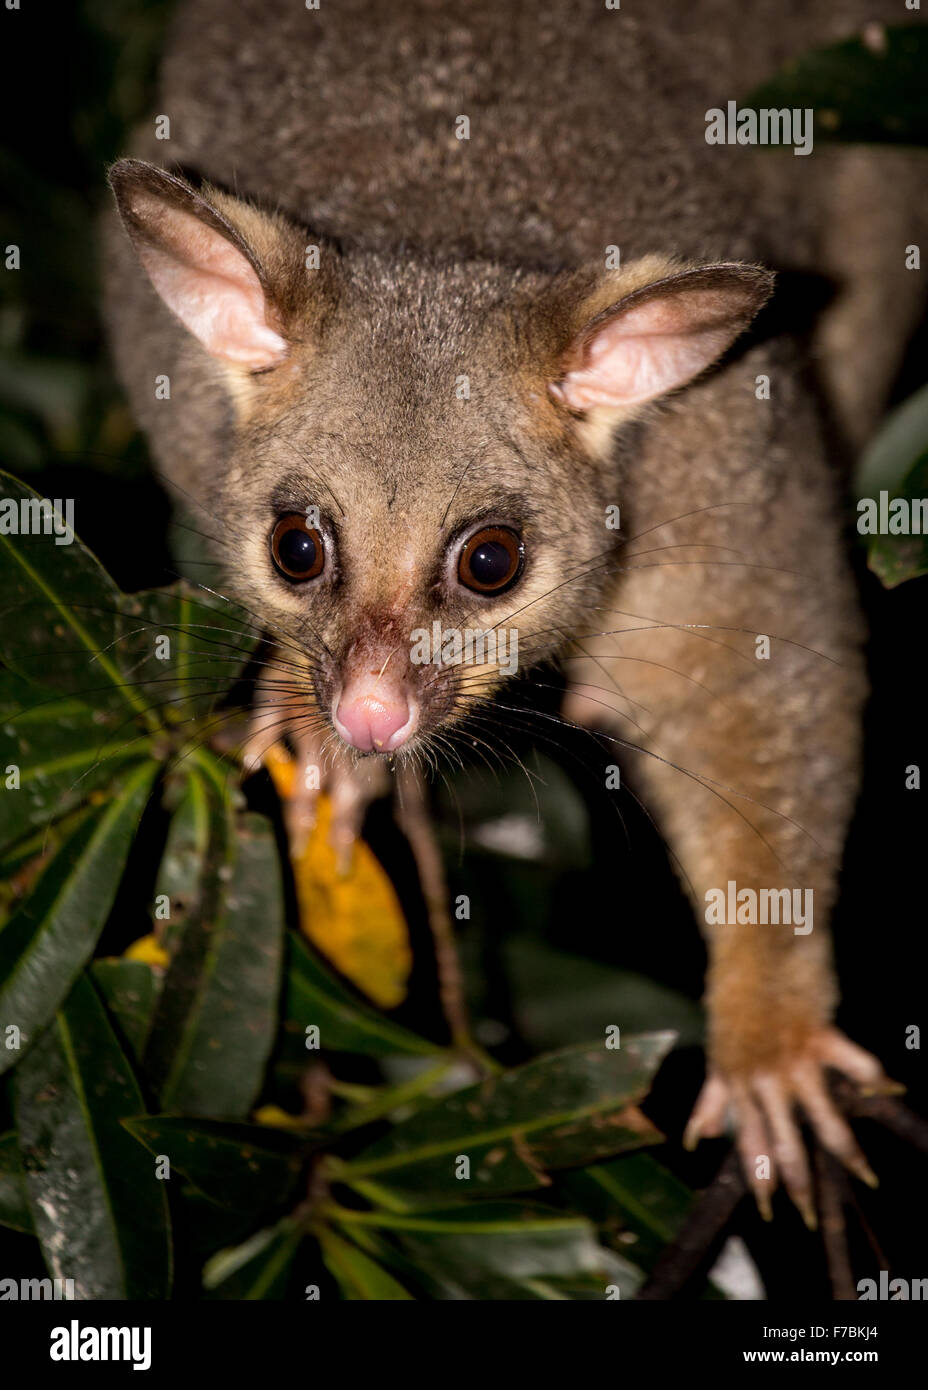 brushtail possum stock photos u0026 brushtail possum stock images alamy